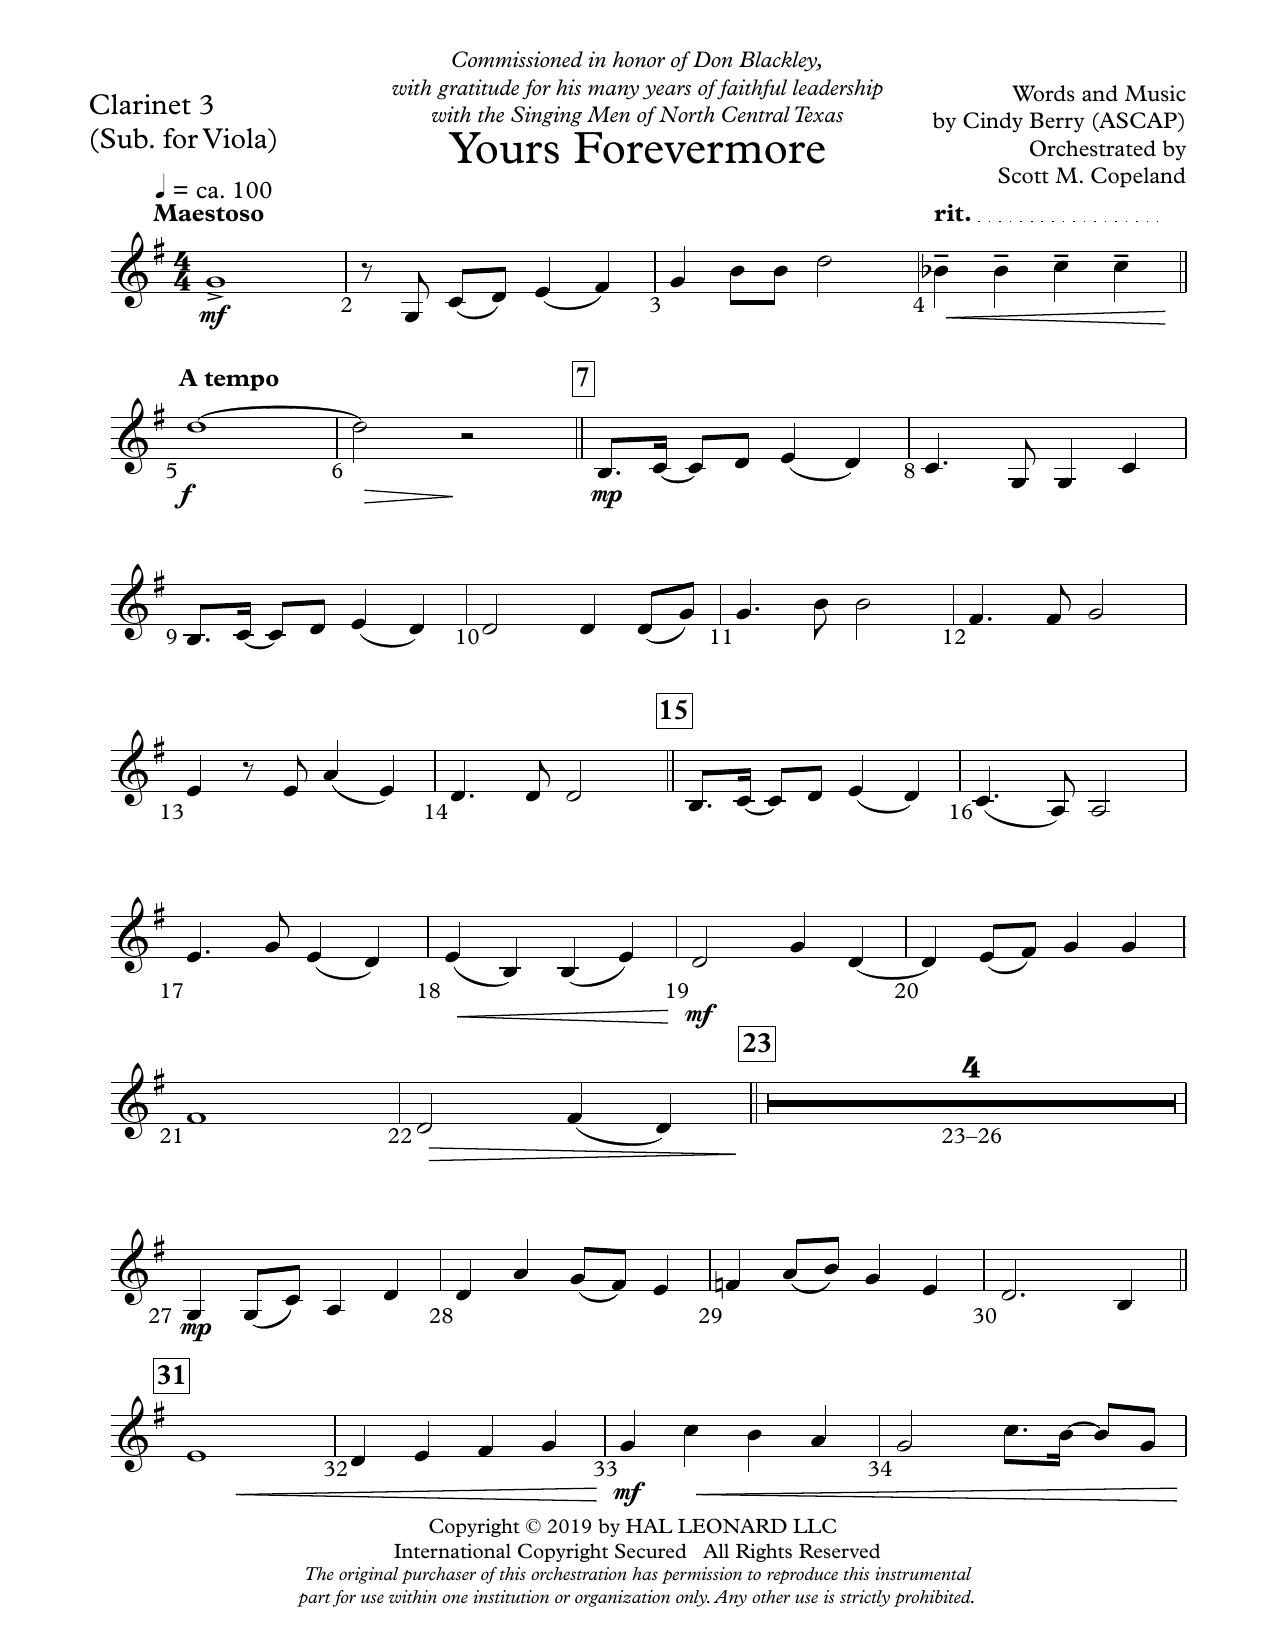 Yours Forevermore - Clarinet 3 (Sub. Viola)